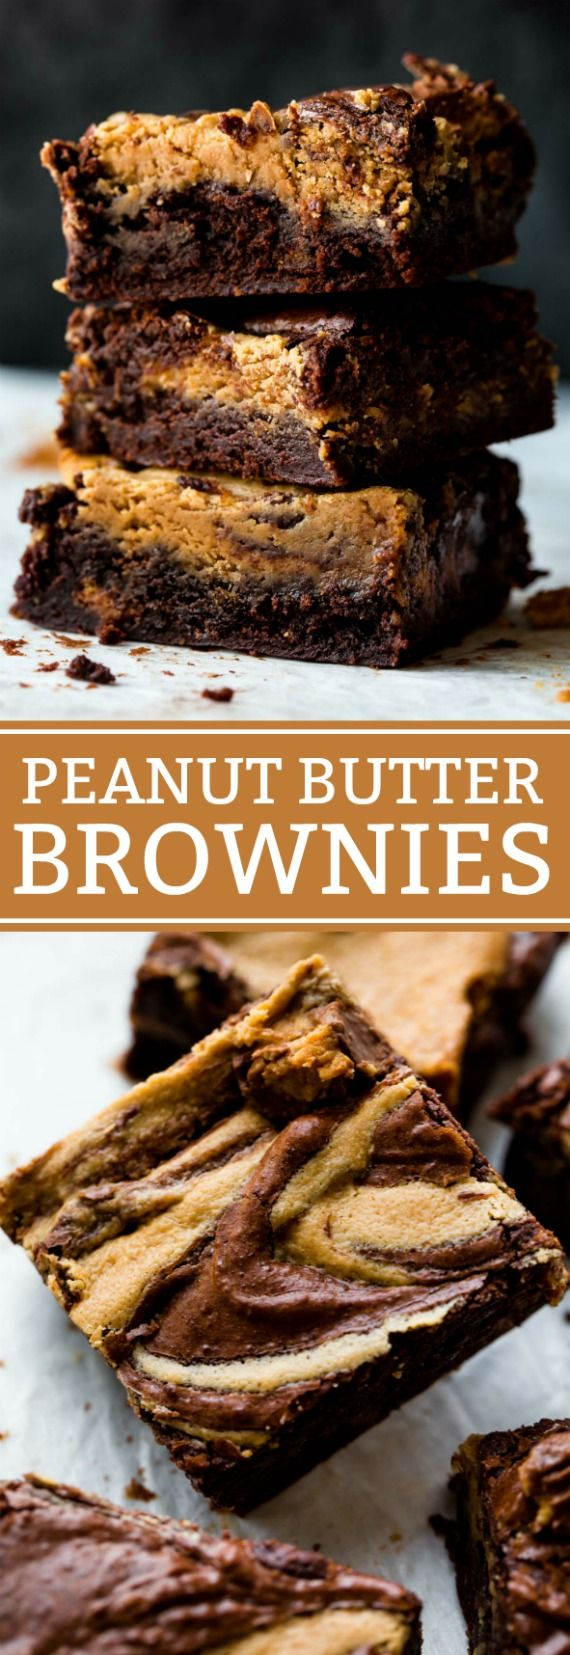 Guaranteed to be the best peanut butter swirl brownies you try! Moist, fudgy, rich, and decadent brownie recipe on sallysbakingaddiction.com